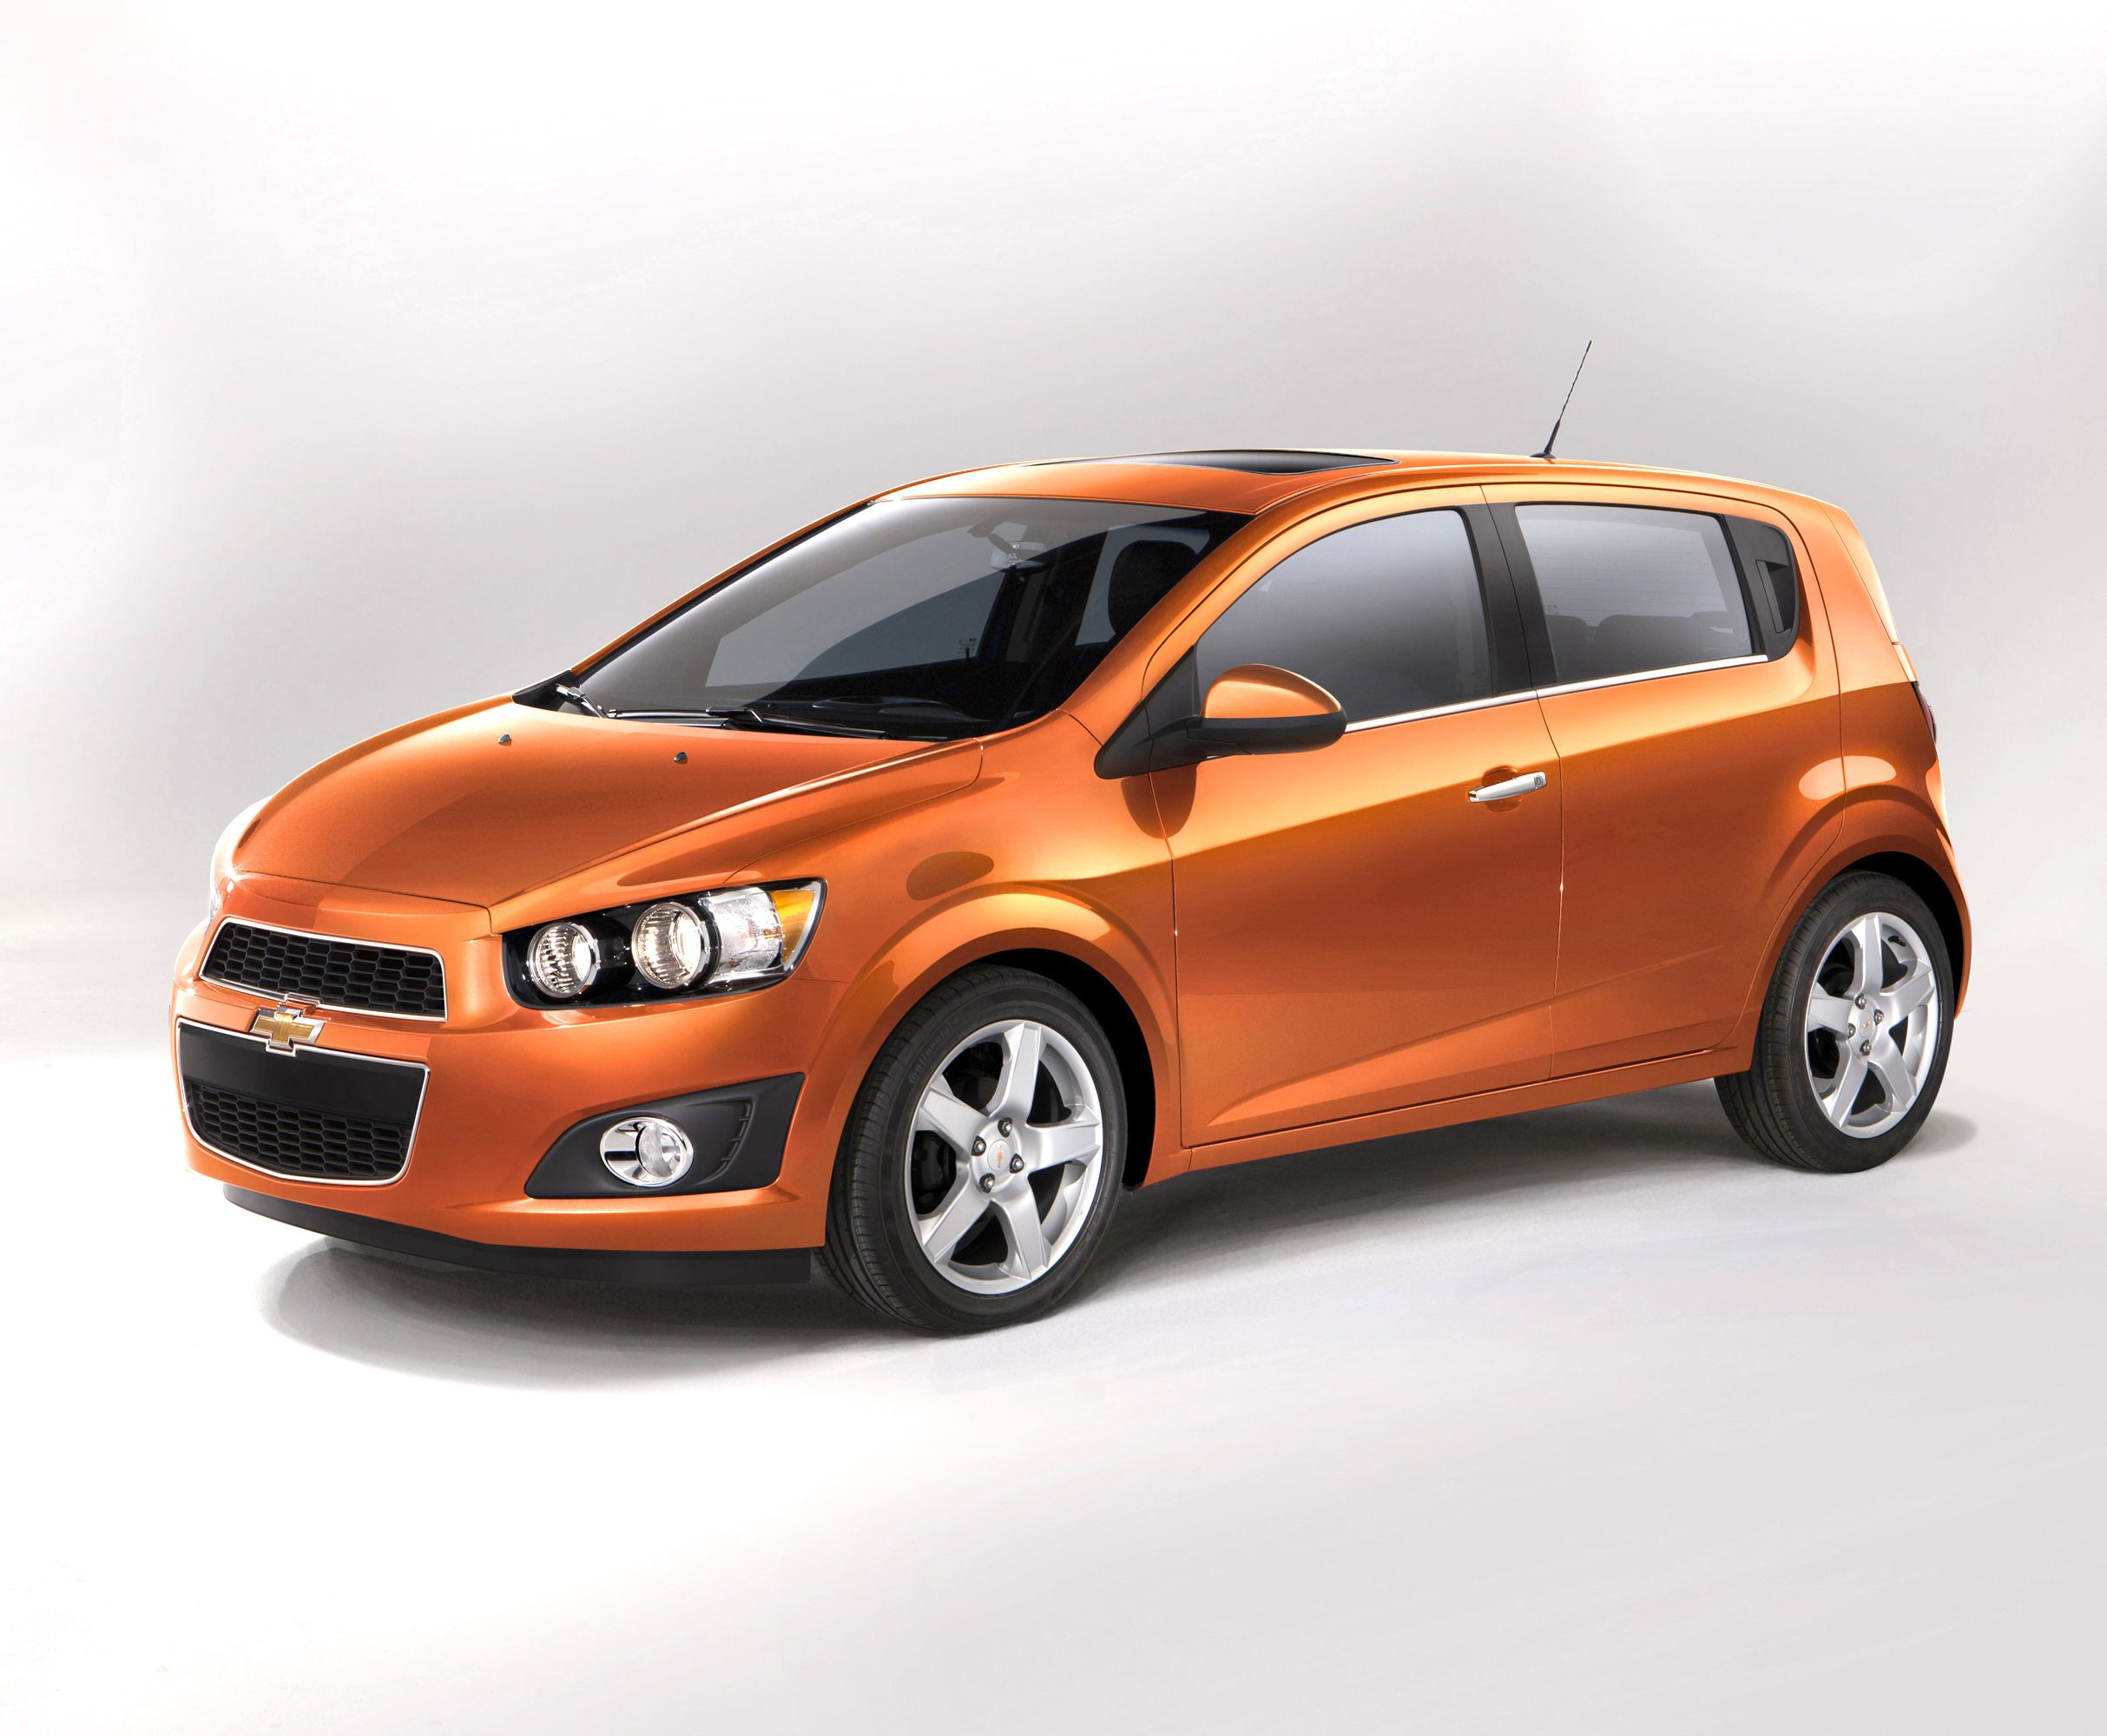 Orange Chevy Sonic Chevrolet Sonic Chevy Sonic Sonic Car